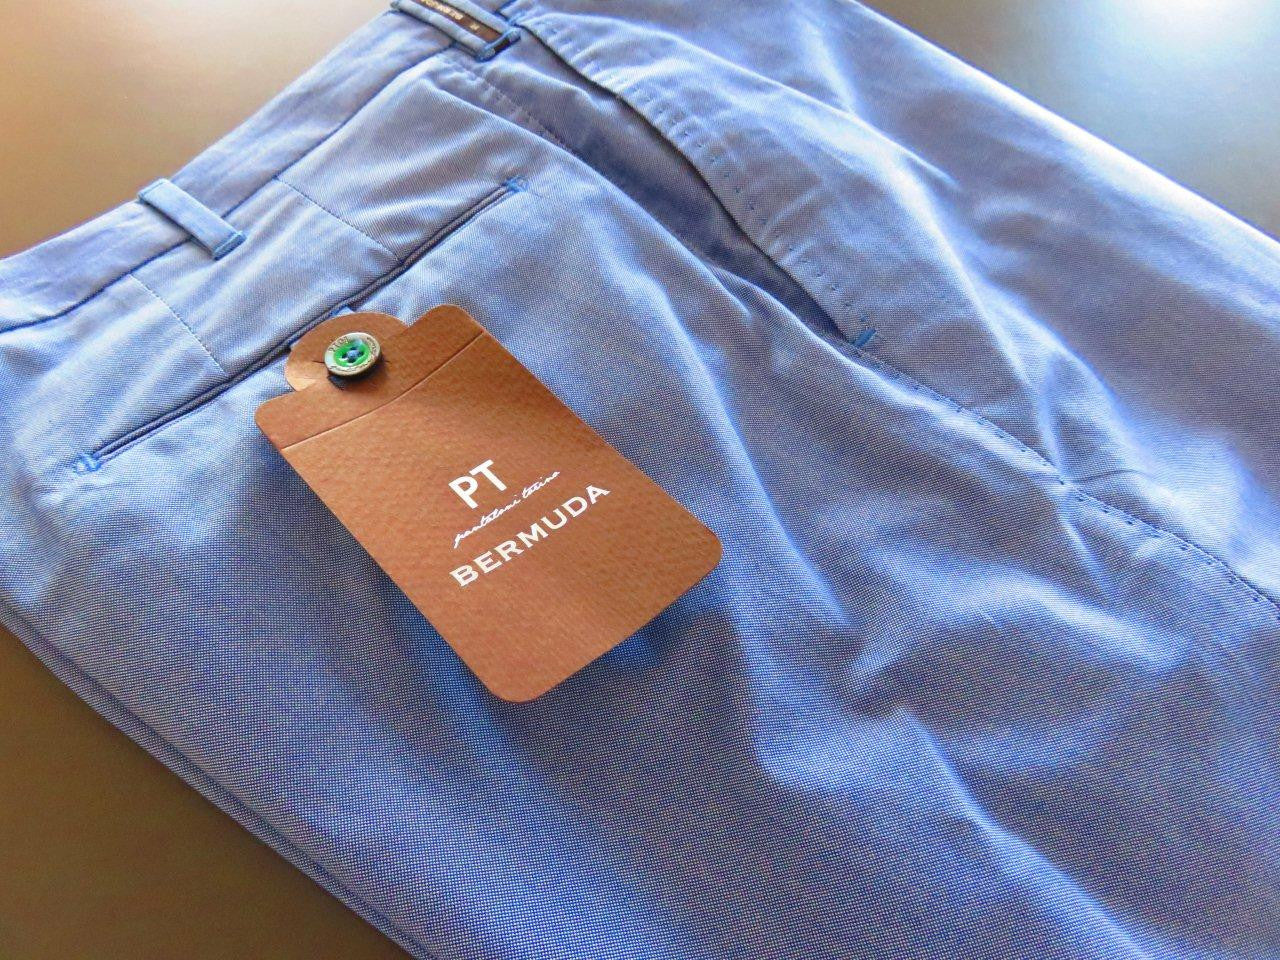 PT01 Pantaloni Torino - Bermuda Special Collection (various colours)